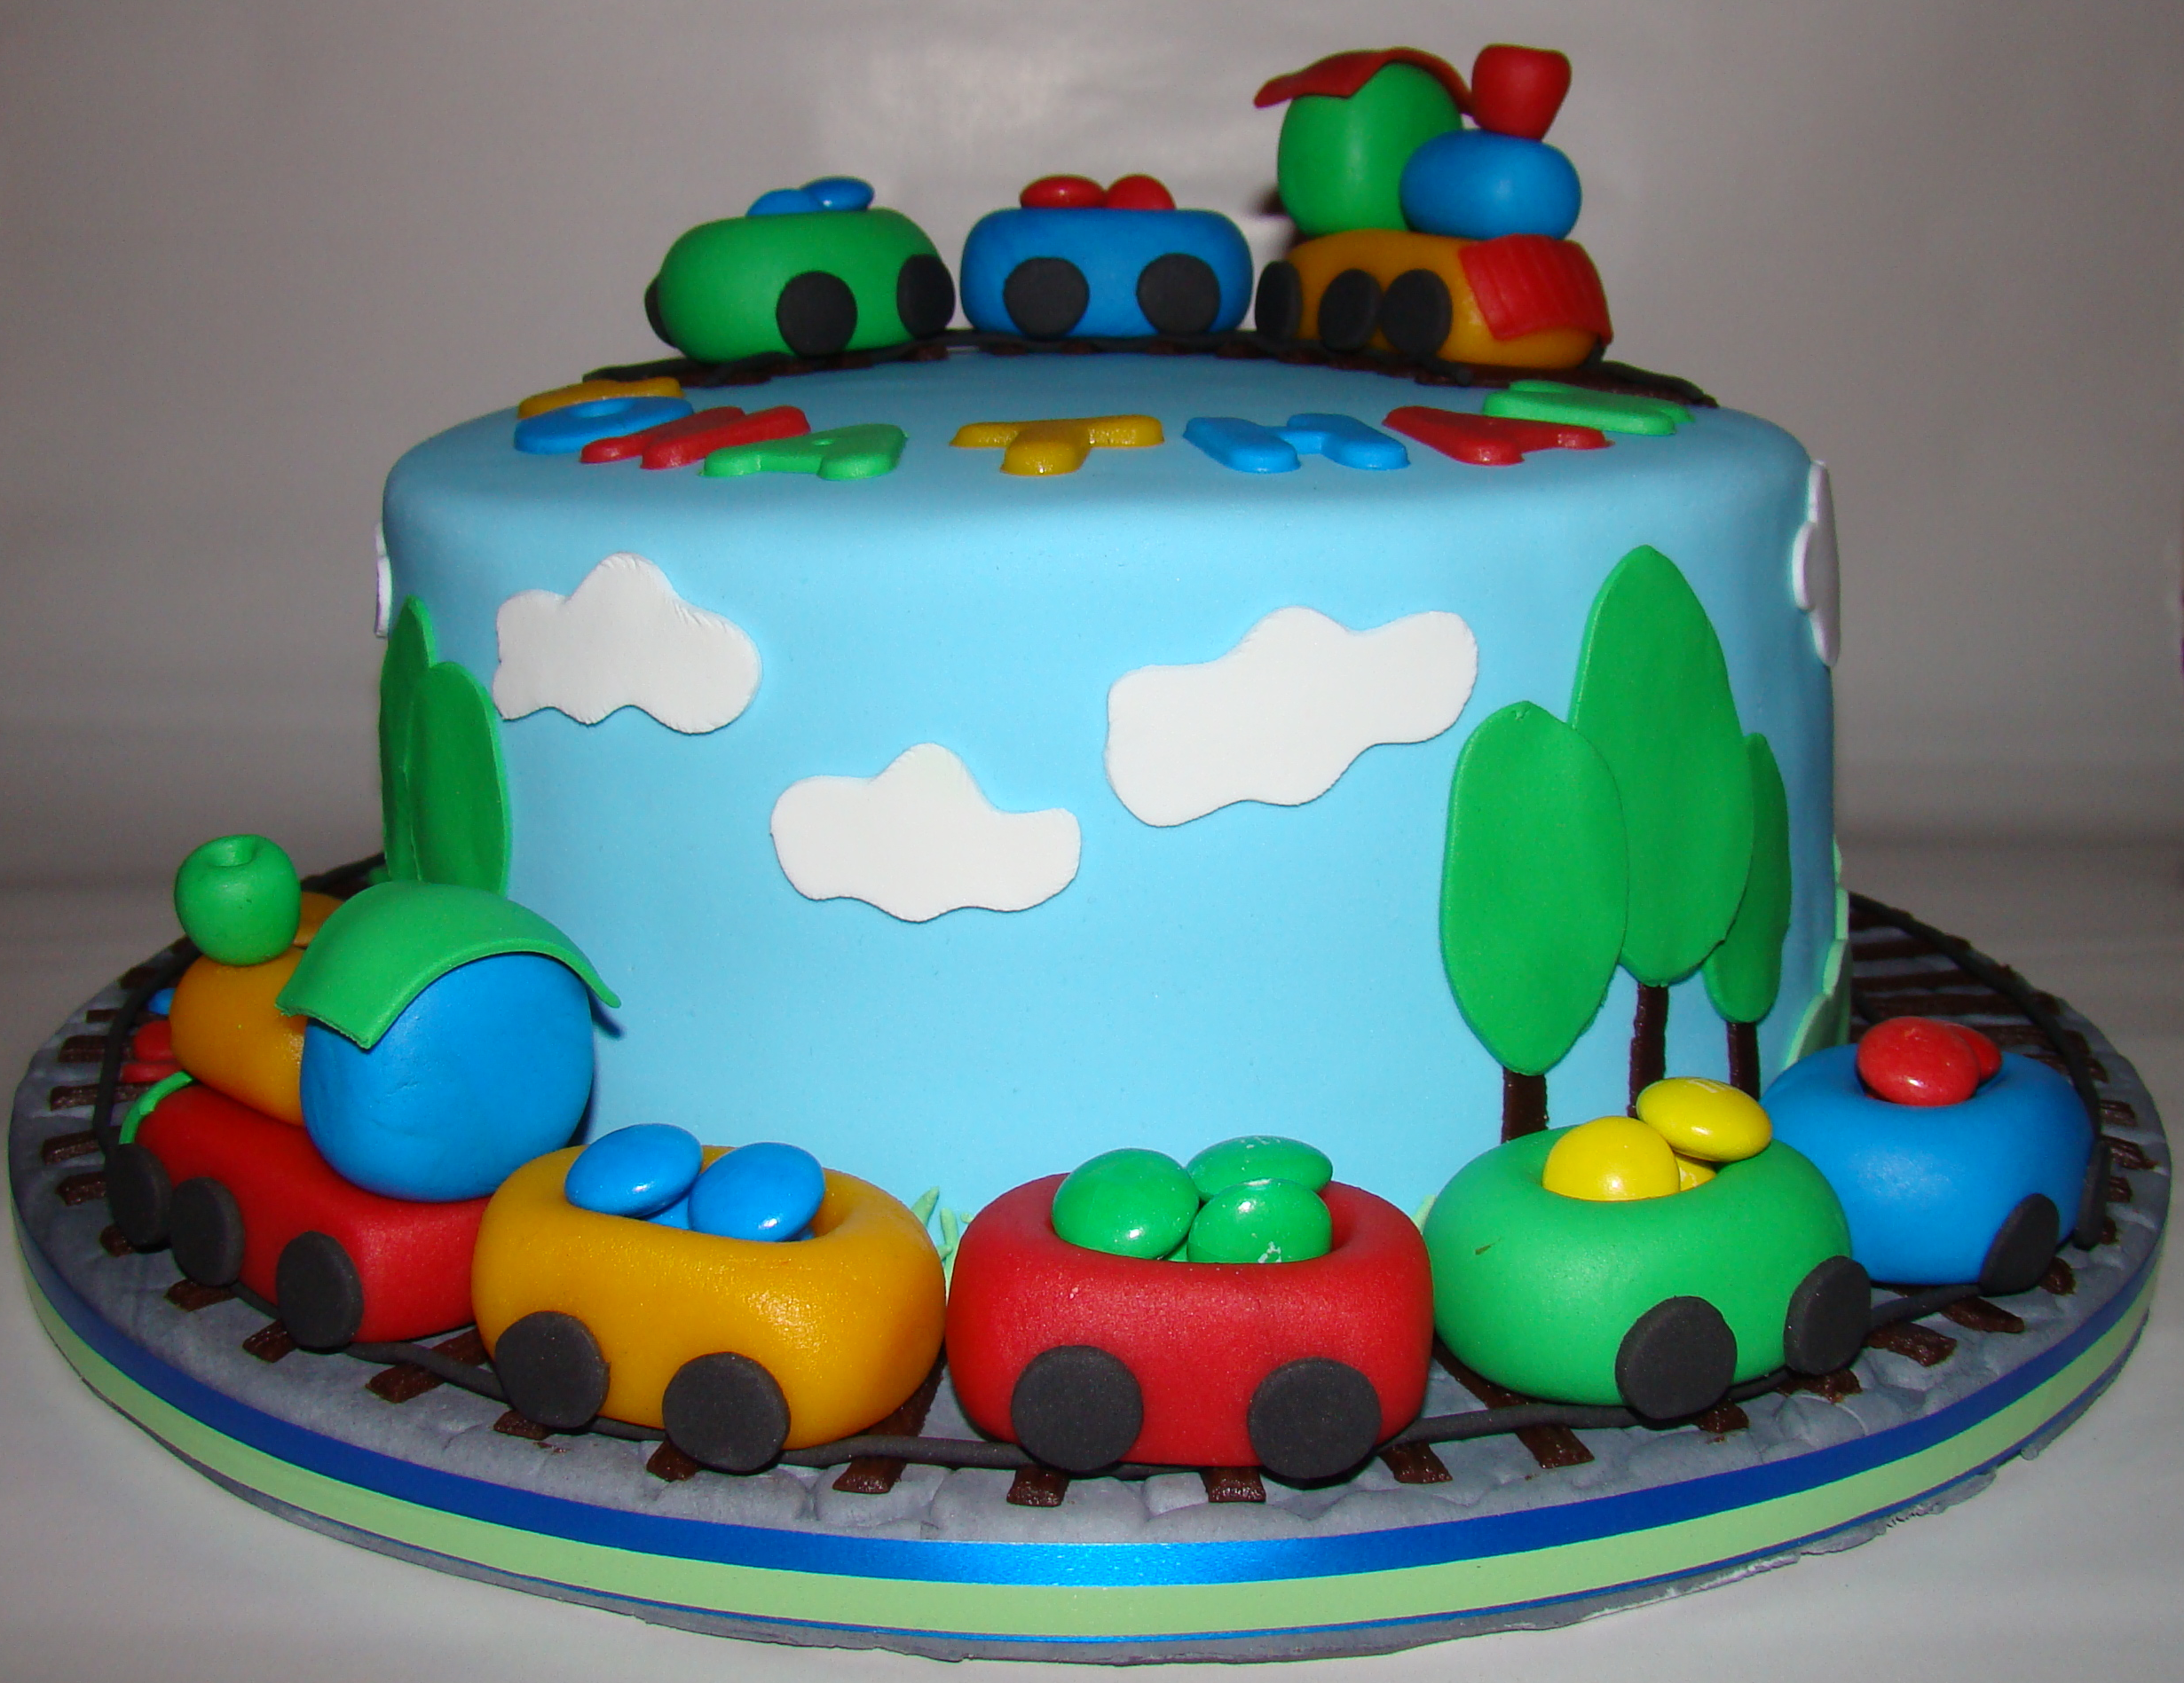 Cake Images For 2 Year Old Boy : Traincake For A Two Years Old Boy - CakeCentral.com